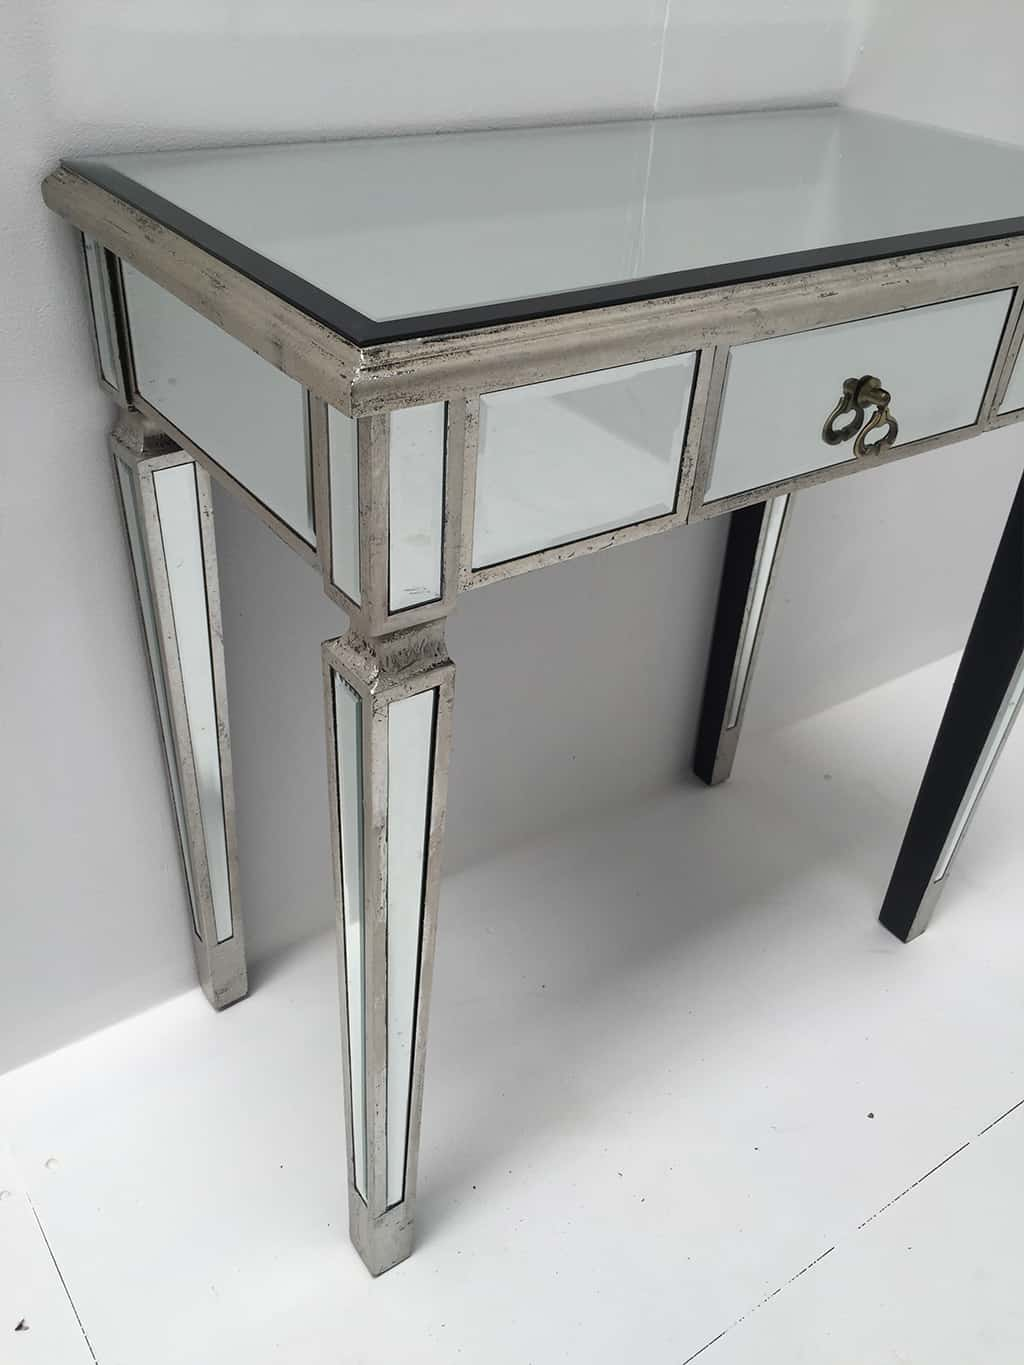 Charleston Mirrored Console Table with a single drawer, slim design, drop shaped handle, antiqued silver finish, wood and mirror